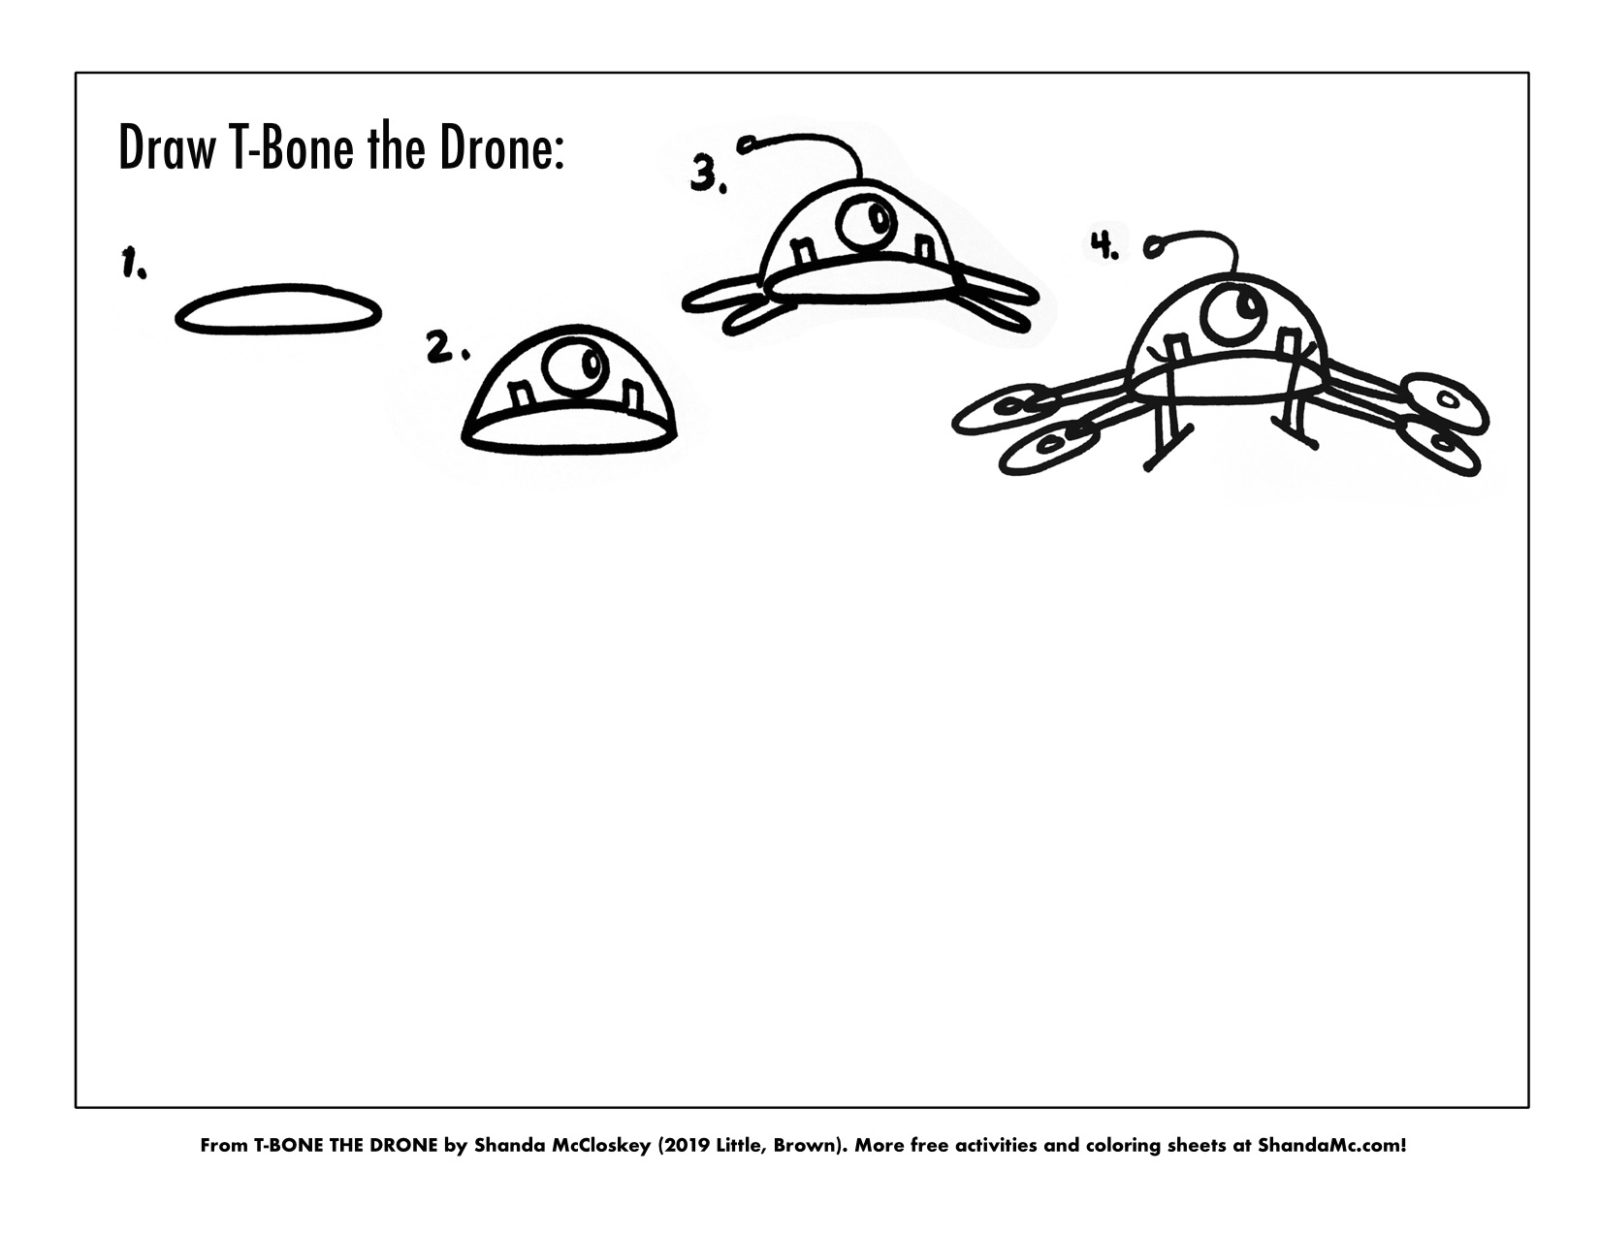 How-to-draw T-Bone the Drone from the book T-Bone the Drone by Shanda McCloskey